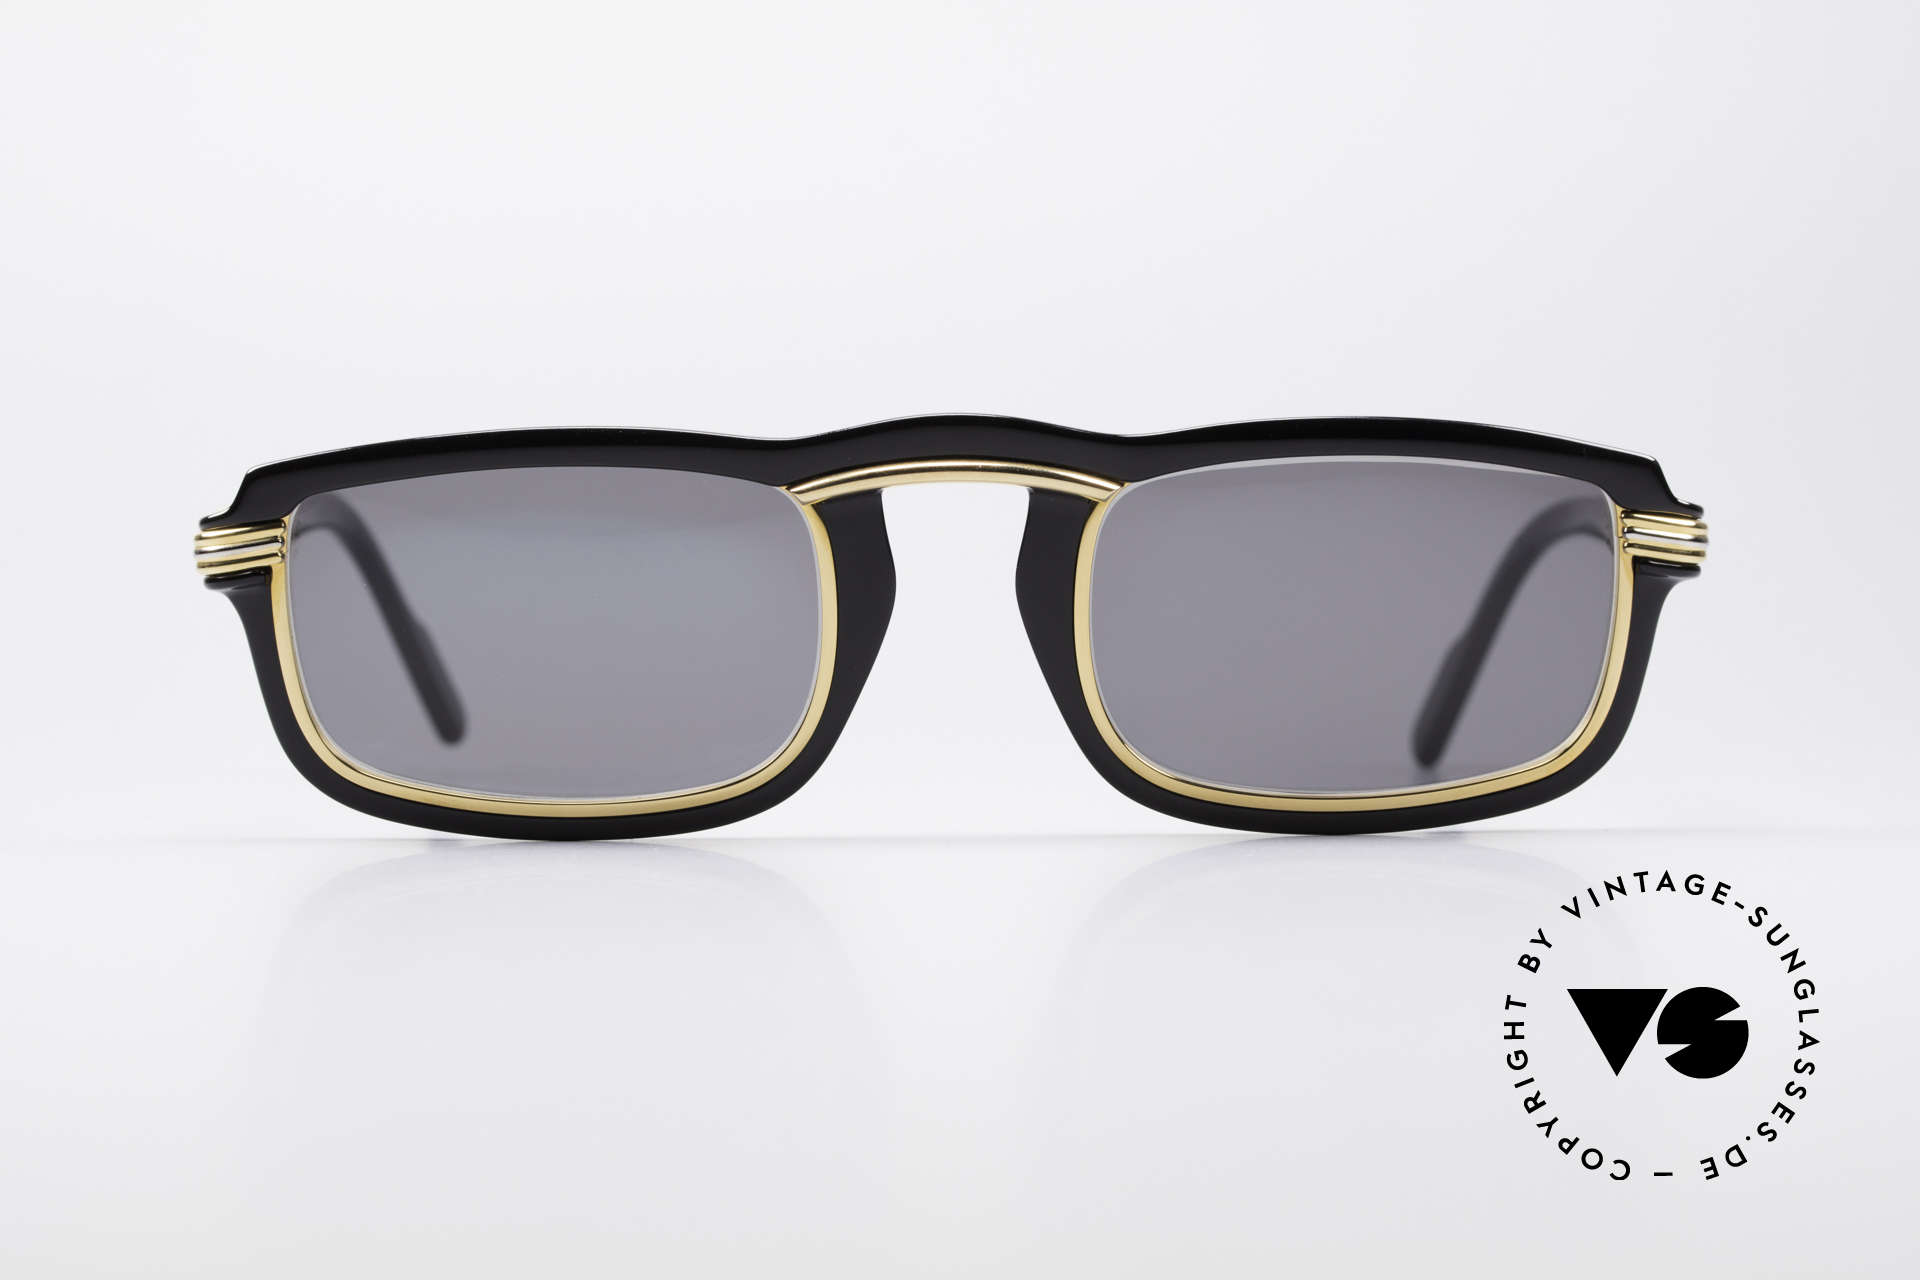 c1010432a92c You may also like these glasses. Ferrari F41 Vintage ...